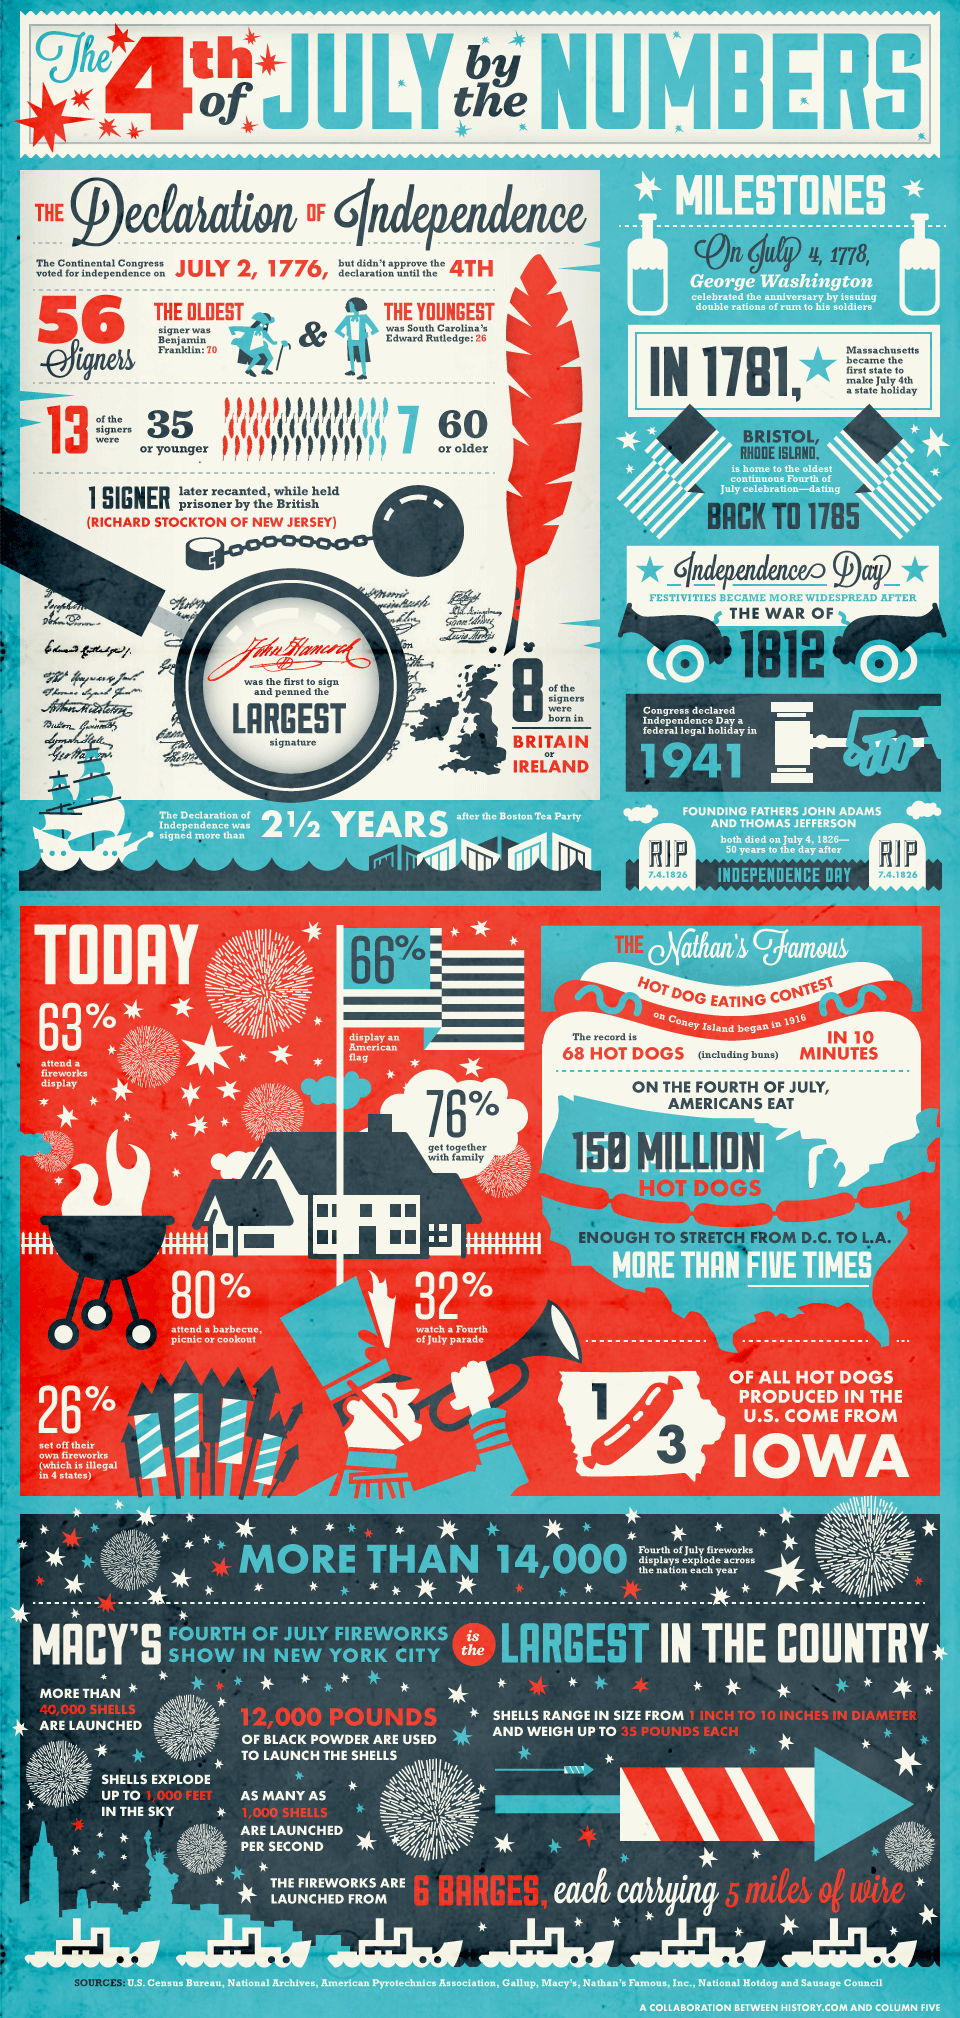 Infographic:  The 4th of July by the Numbers